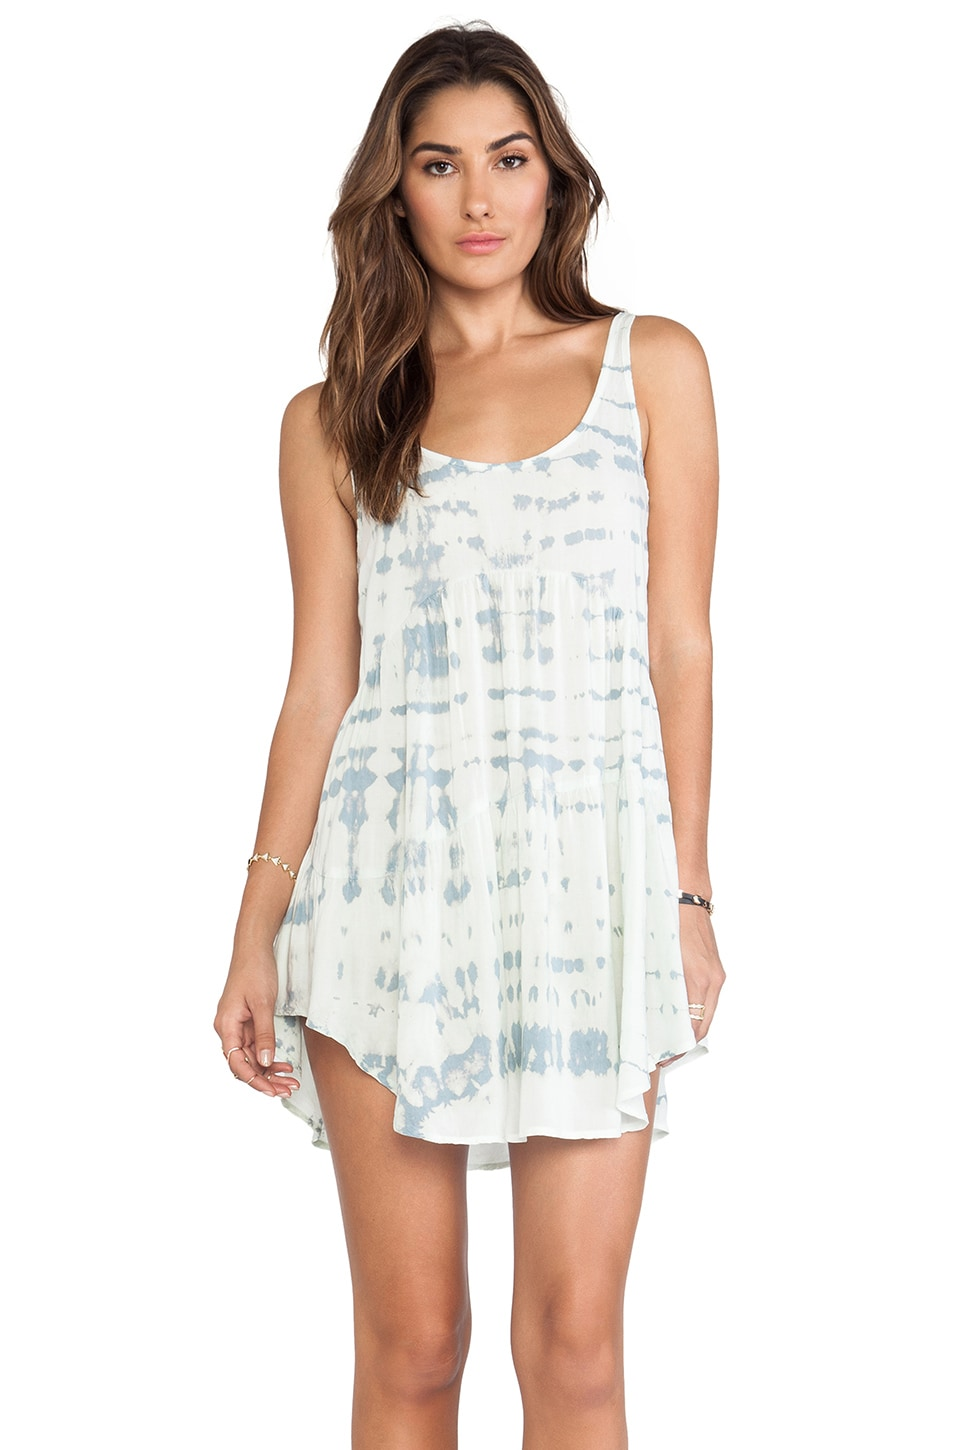 Blue Life Babydoll Tank Dress in Light Blue & White Ripple